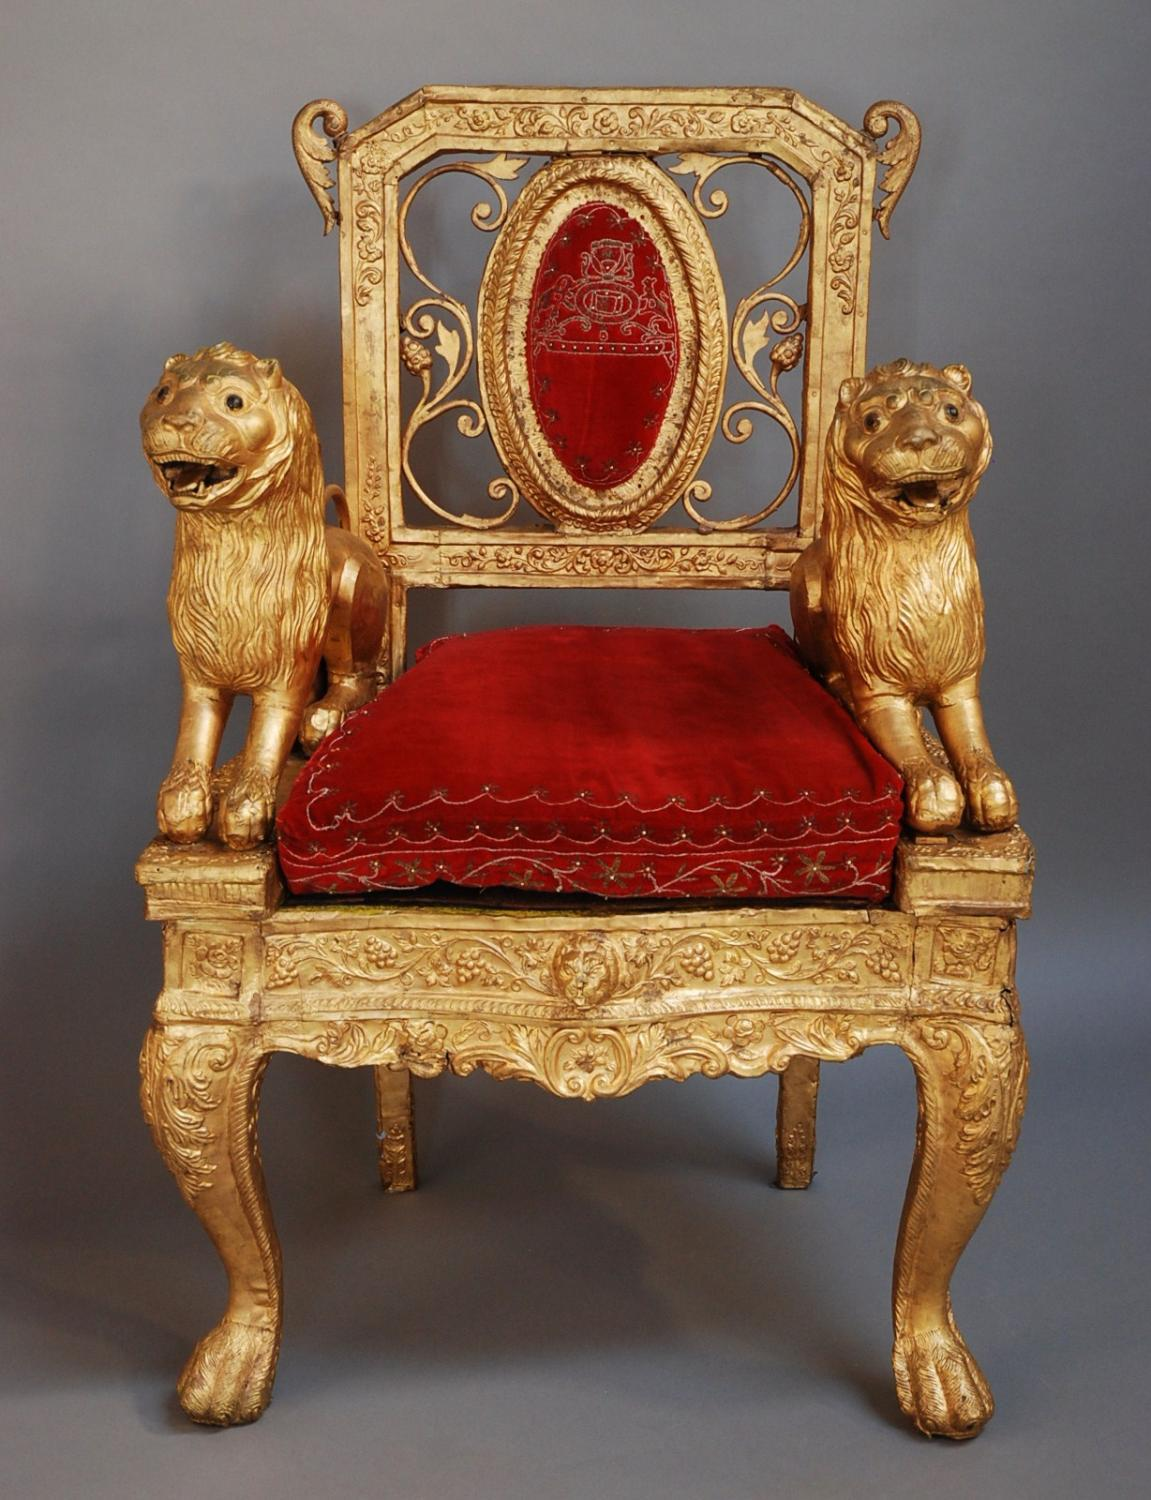 Mid/late 19th century Indian throne chair